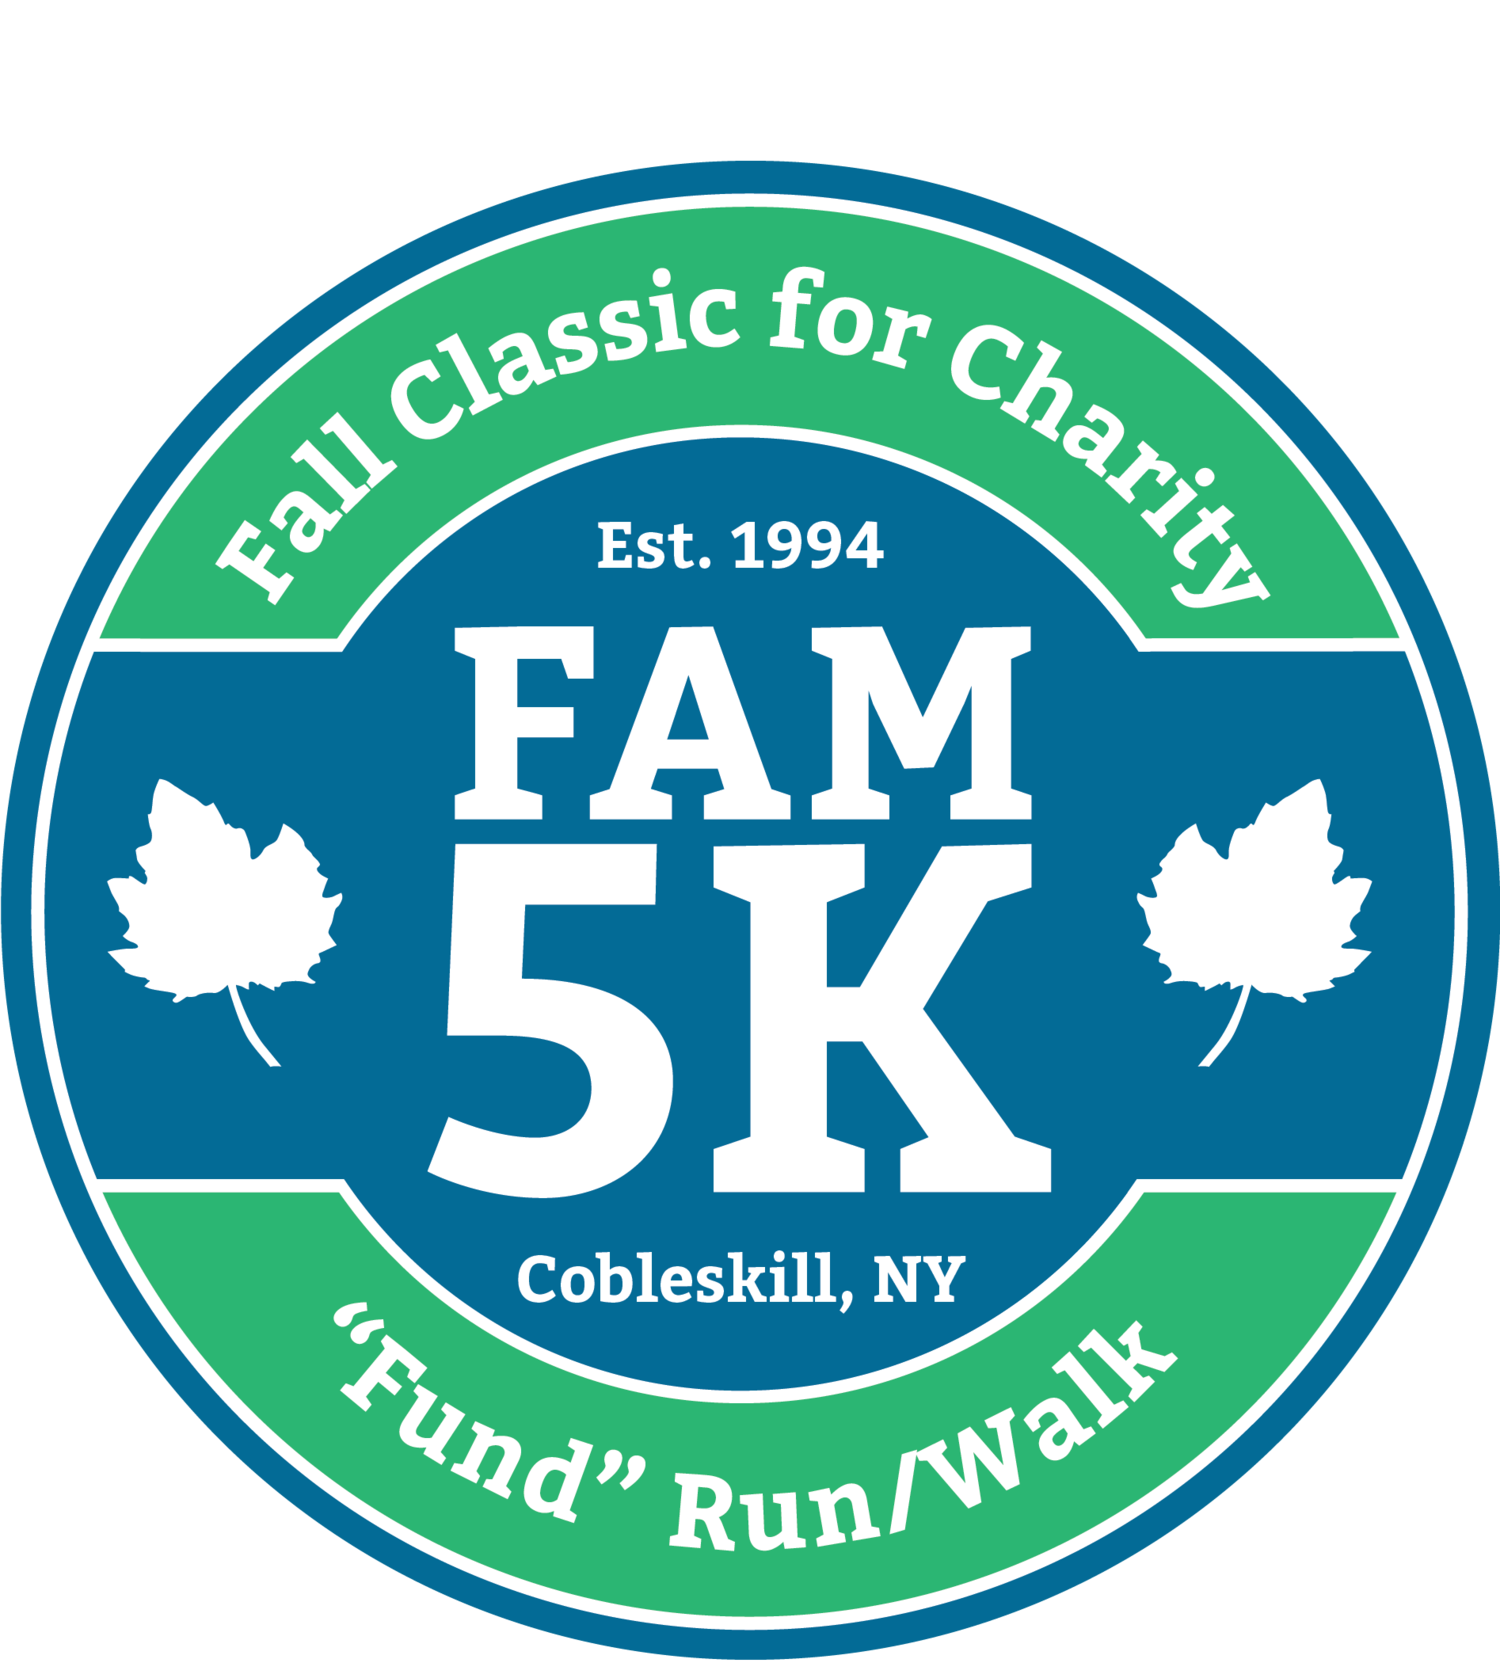 FAM 5K Fund Run/Walk